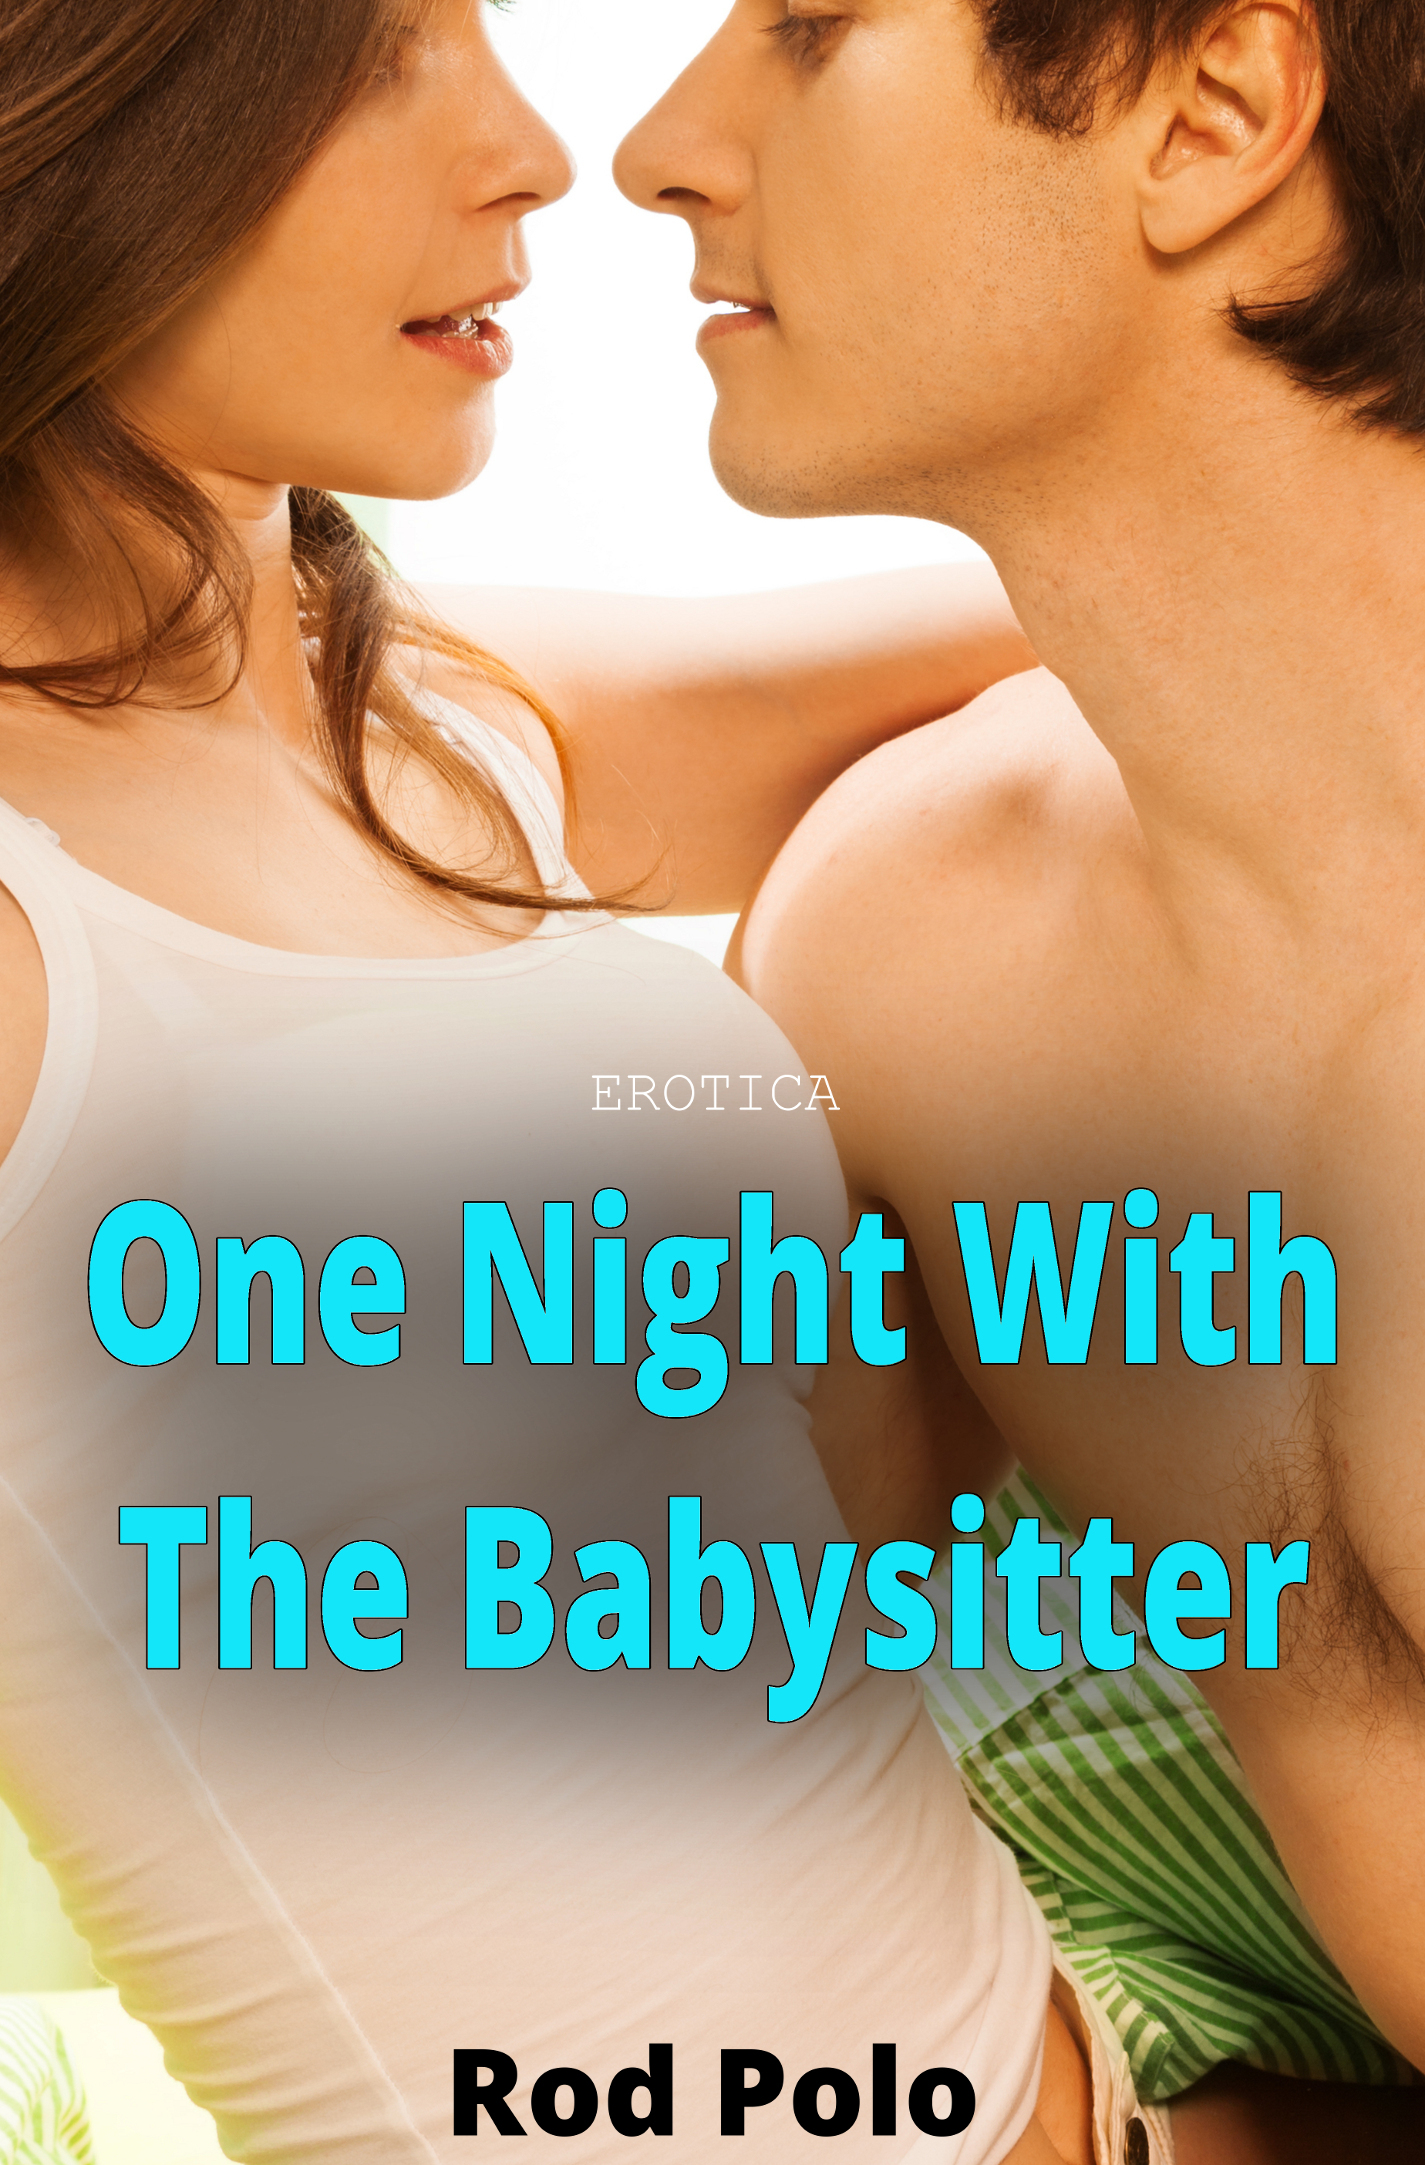 Erotica: One Night With The Babysitter  by  Rod Polo